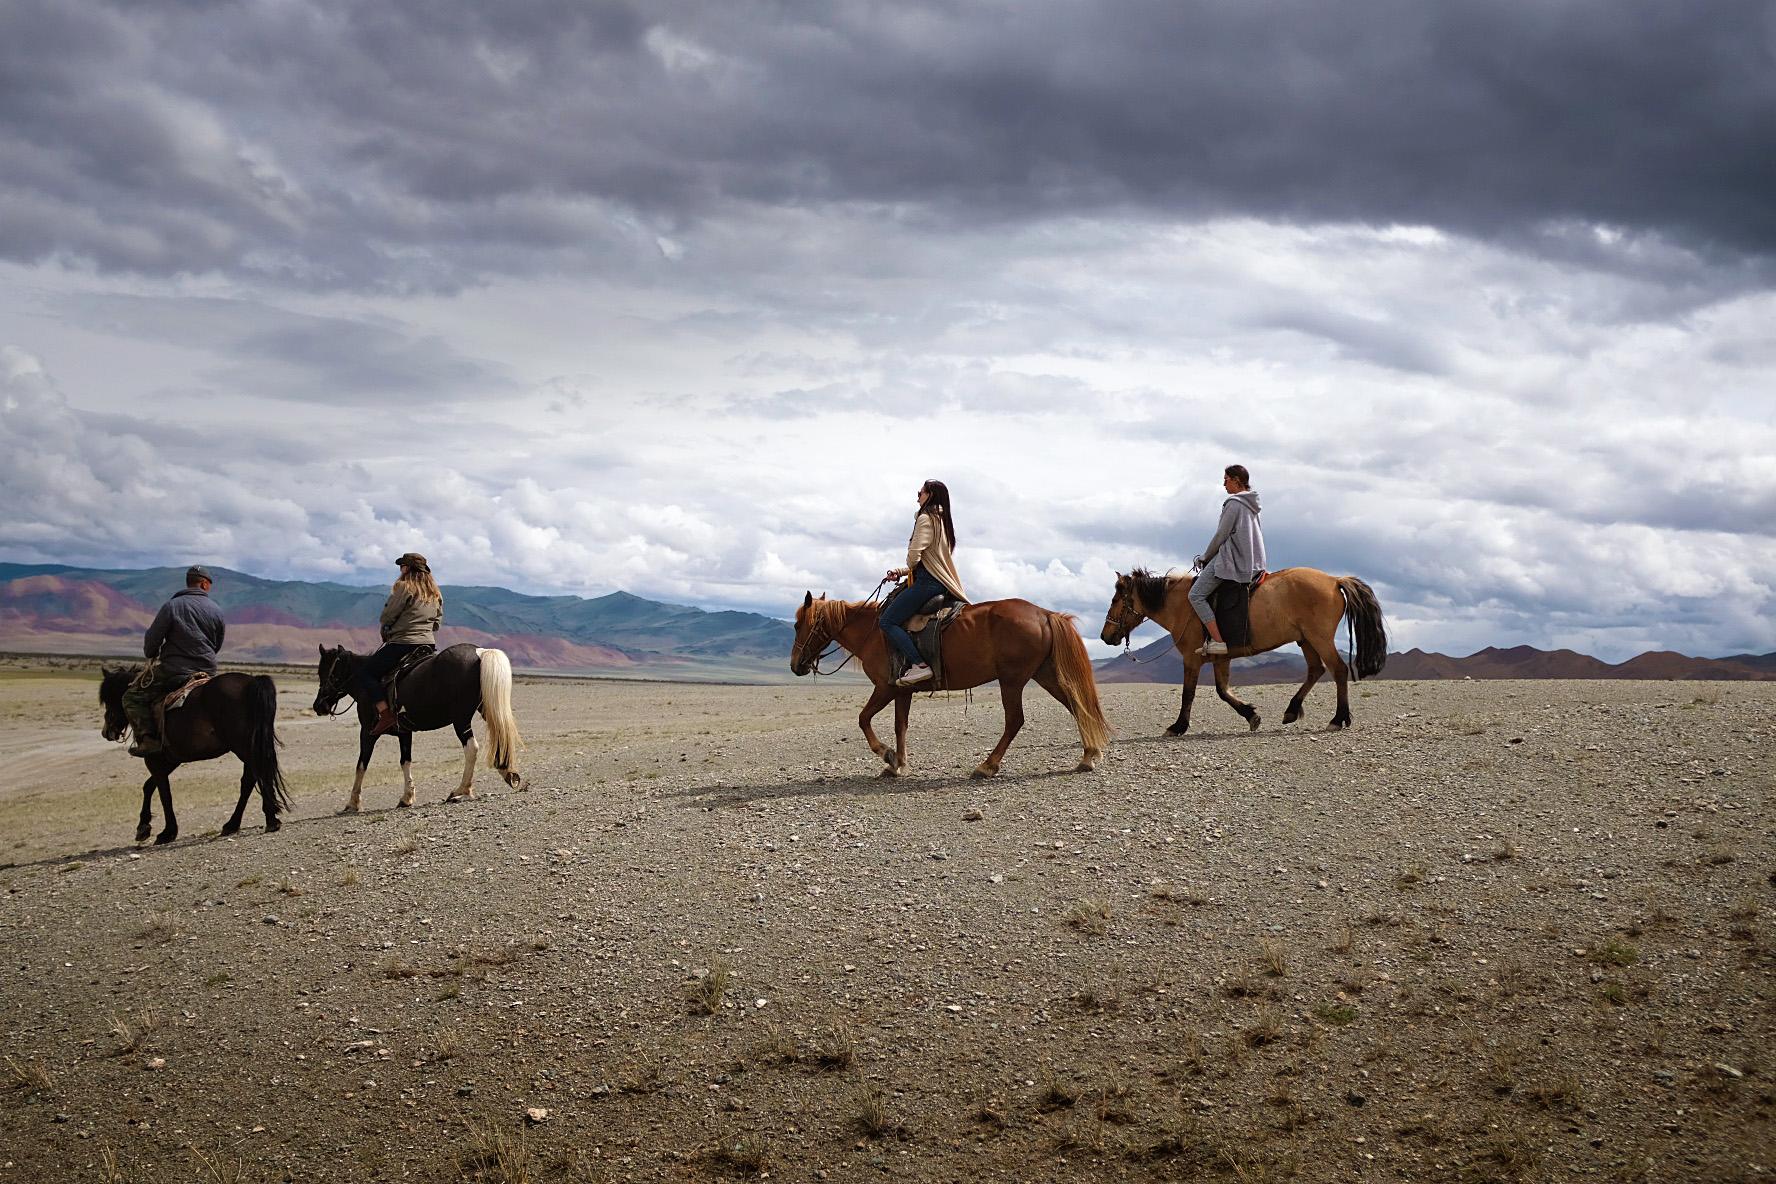 TASIS Students on horseback in Mongolia